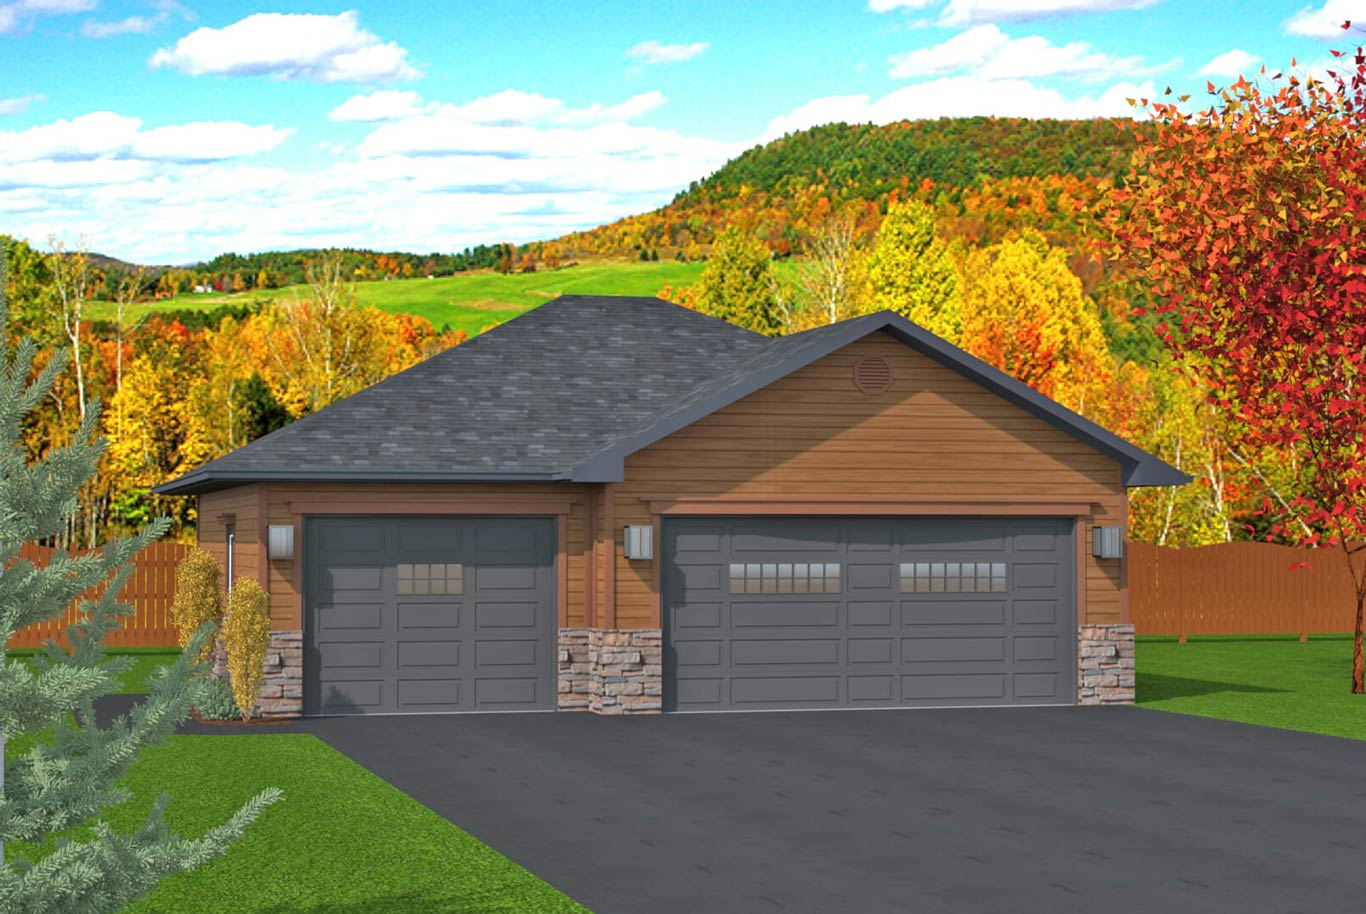 936 sq.ft. timber mart 3 car garage exterior render